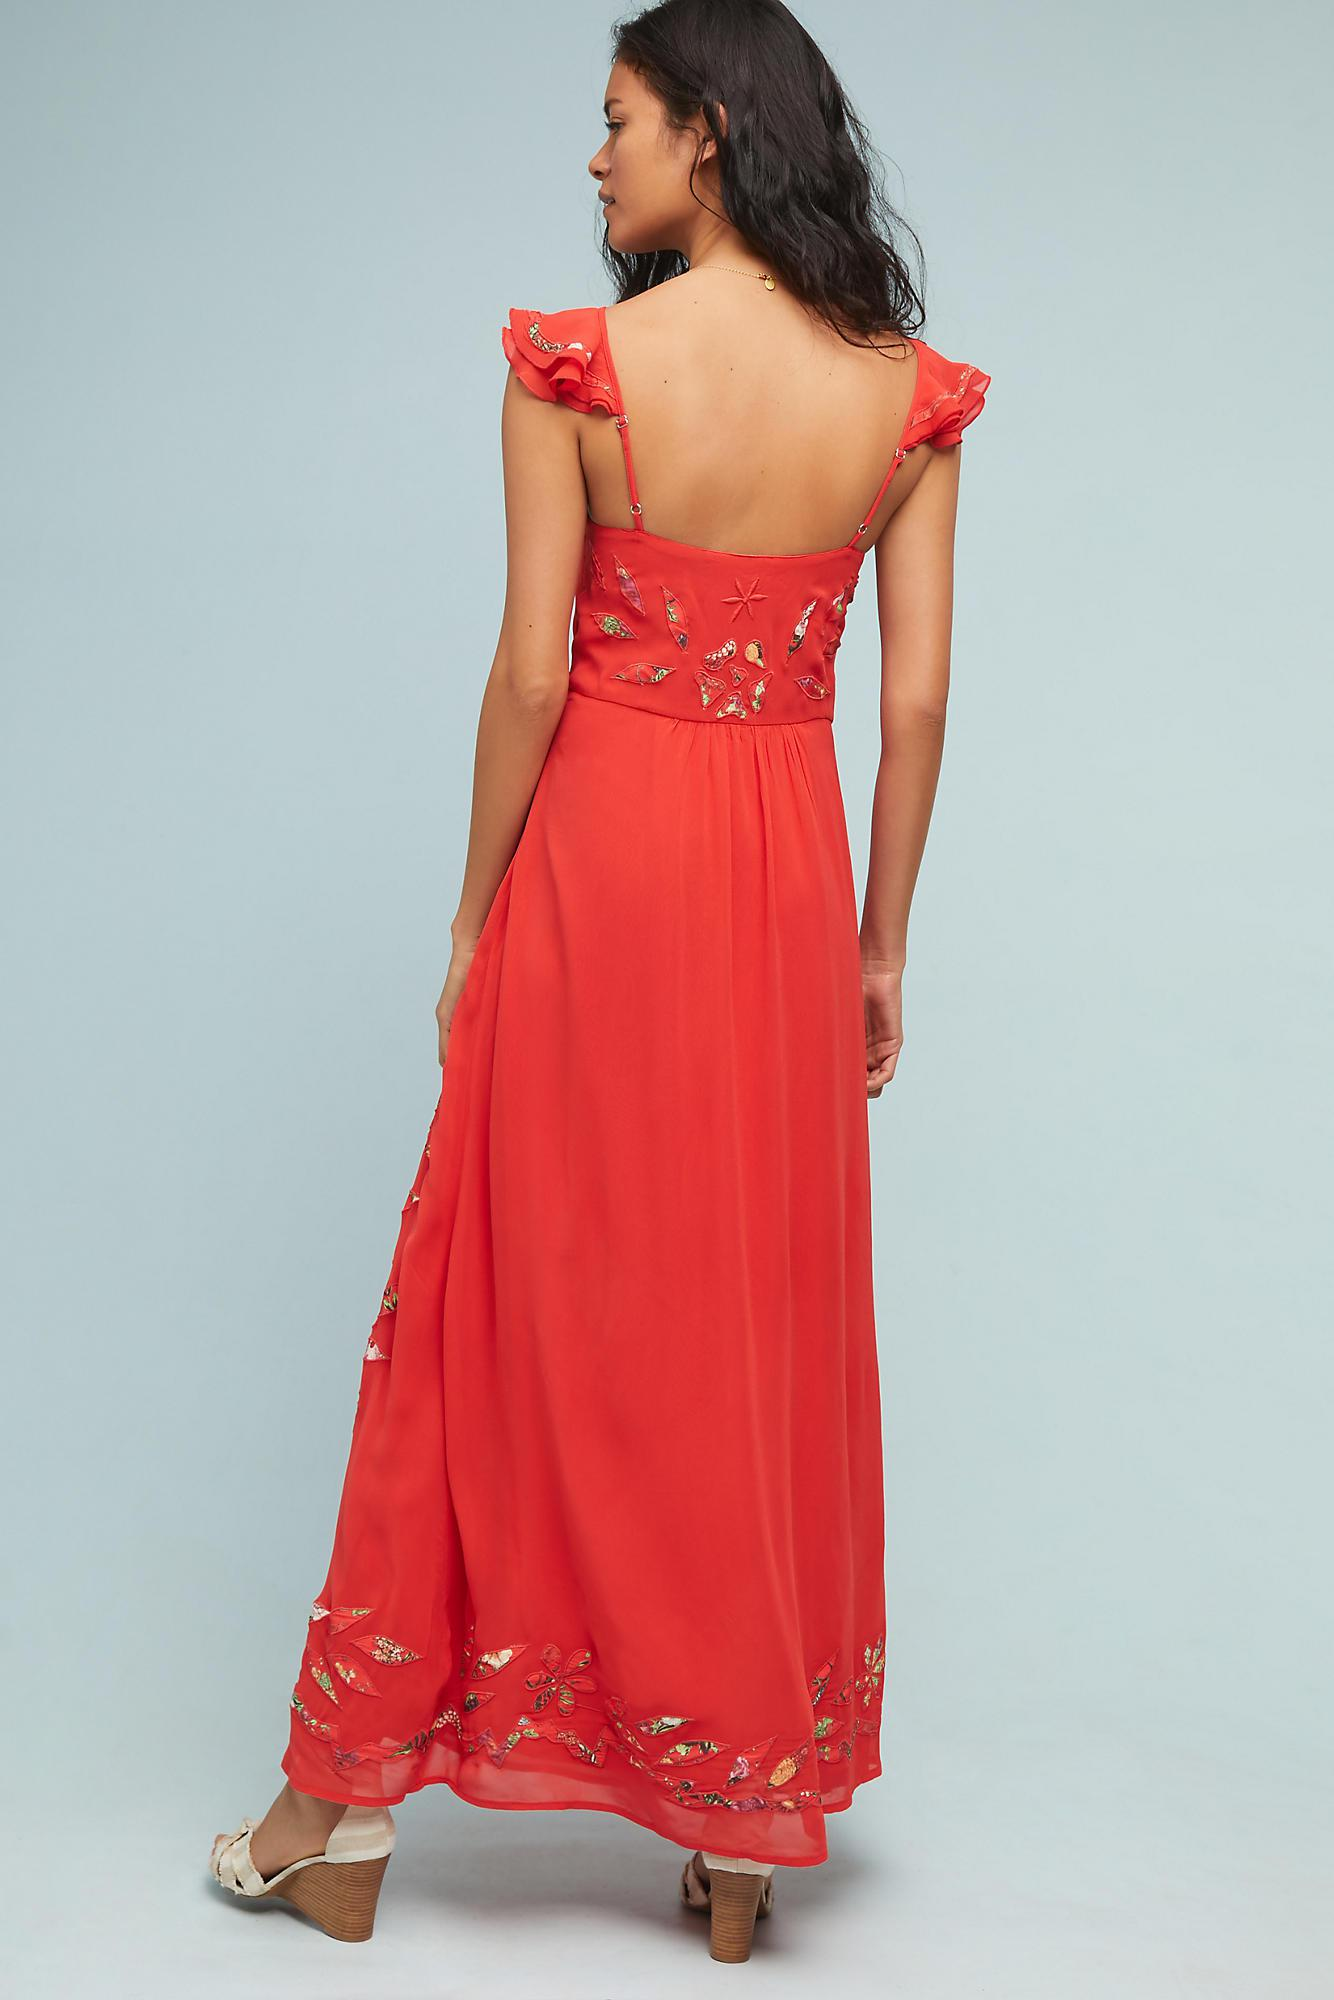 150e2770bca62 FARM Rio Quintana Maxi Dress in Red - Lyst